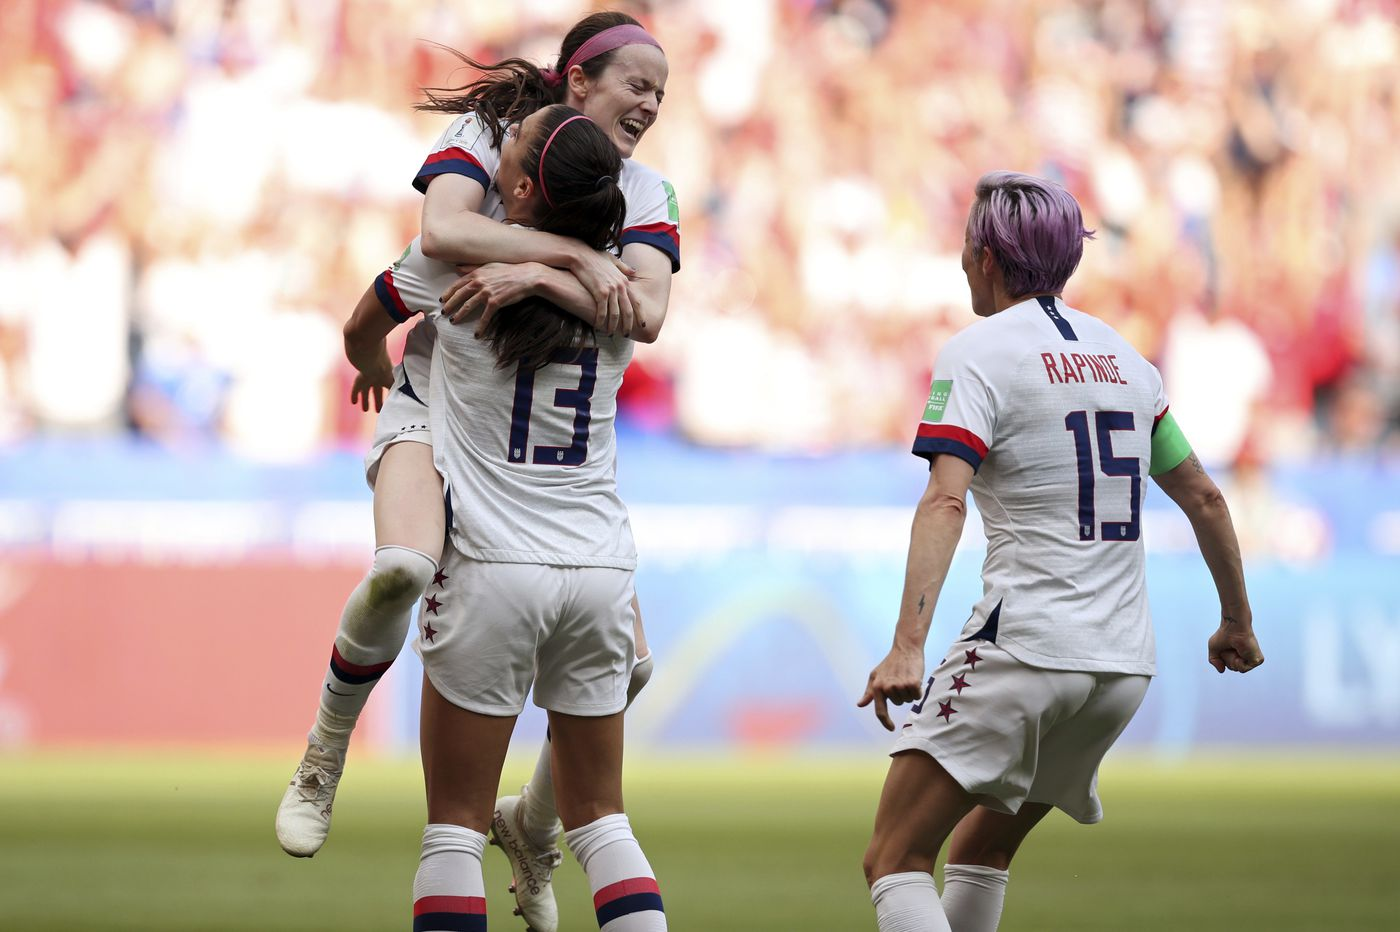 How (and maybe why) the U.S. women's national team made millions of fans, including this guy | Marcus Hayes